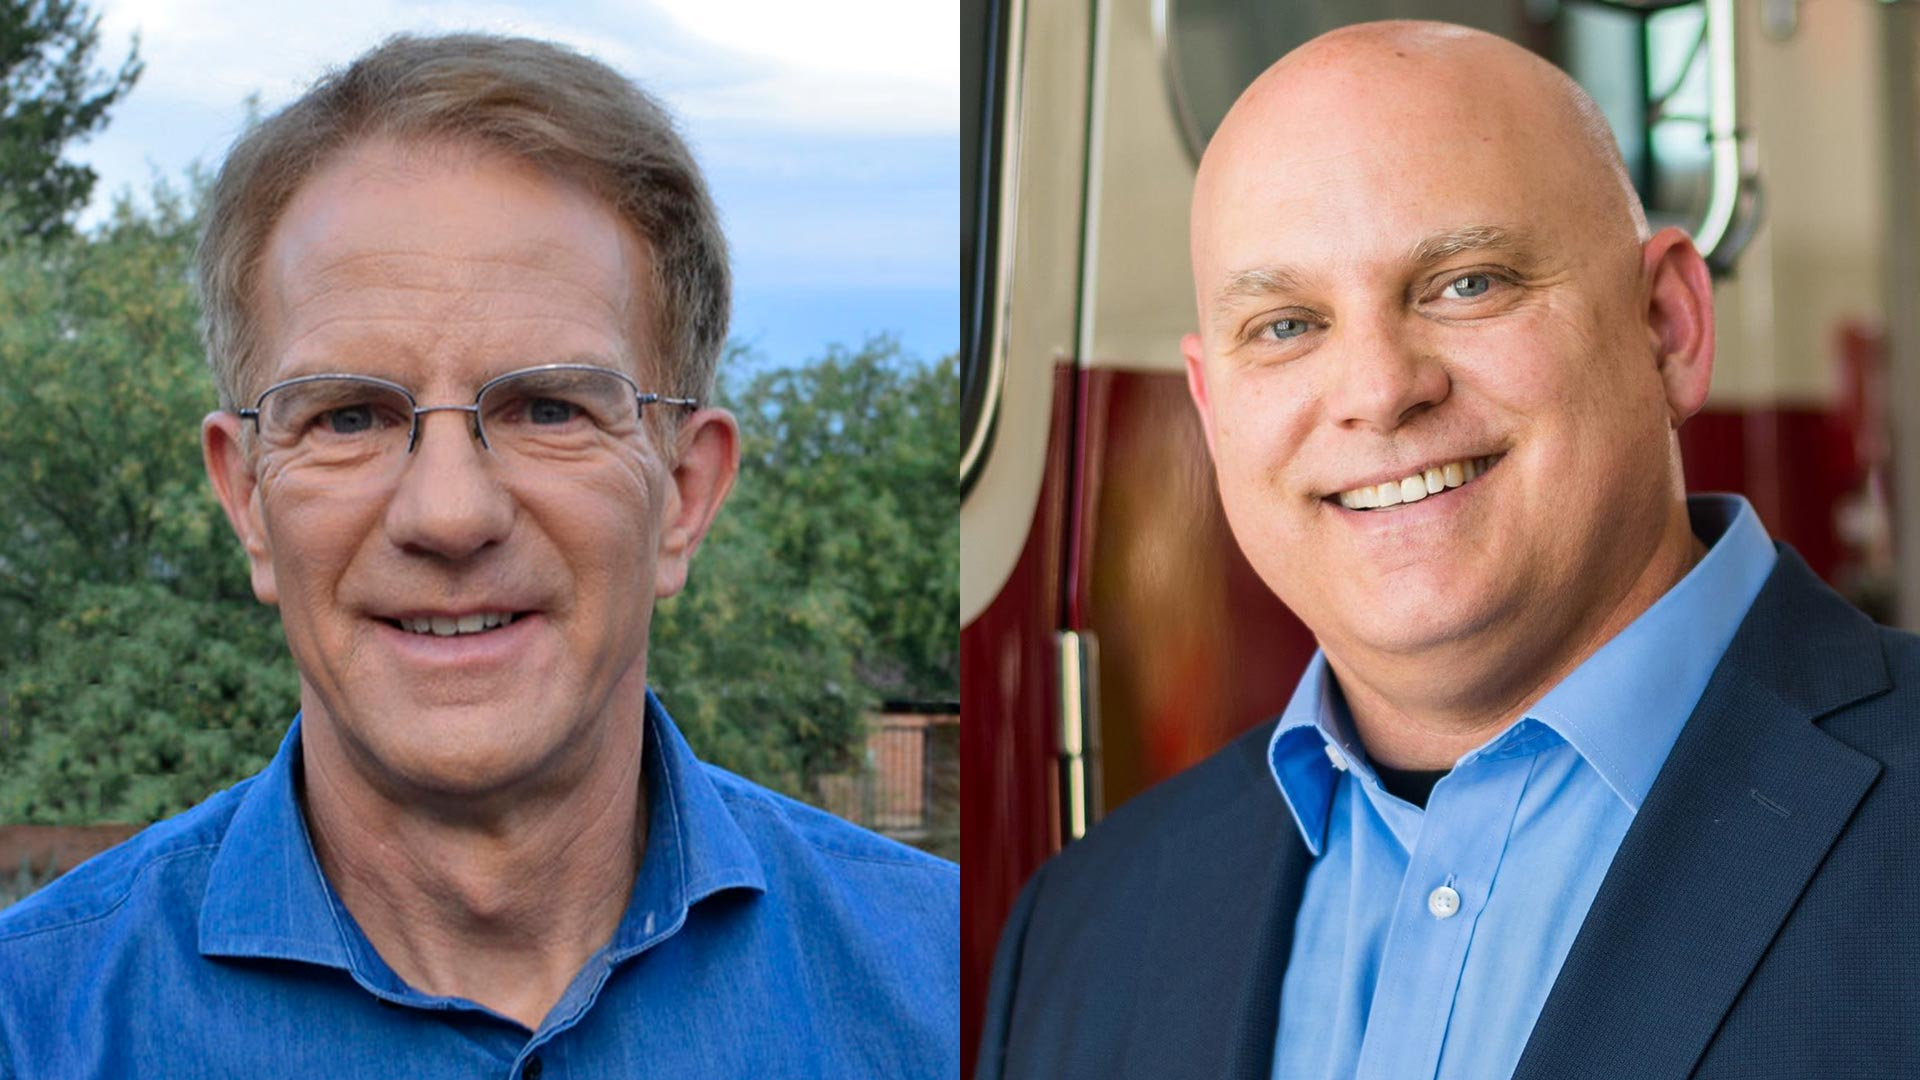 Paul Durham, left, and Gary Watson are running for the Ward 3 seat on the Tucson City Council on Nov. 7, 2017.